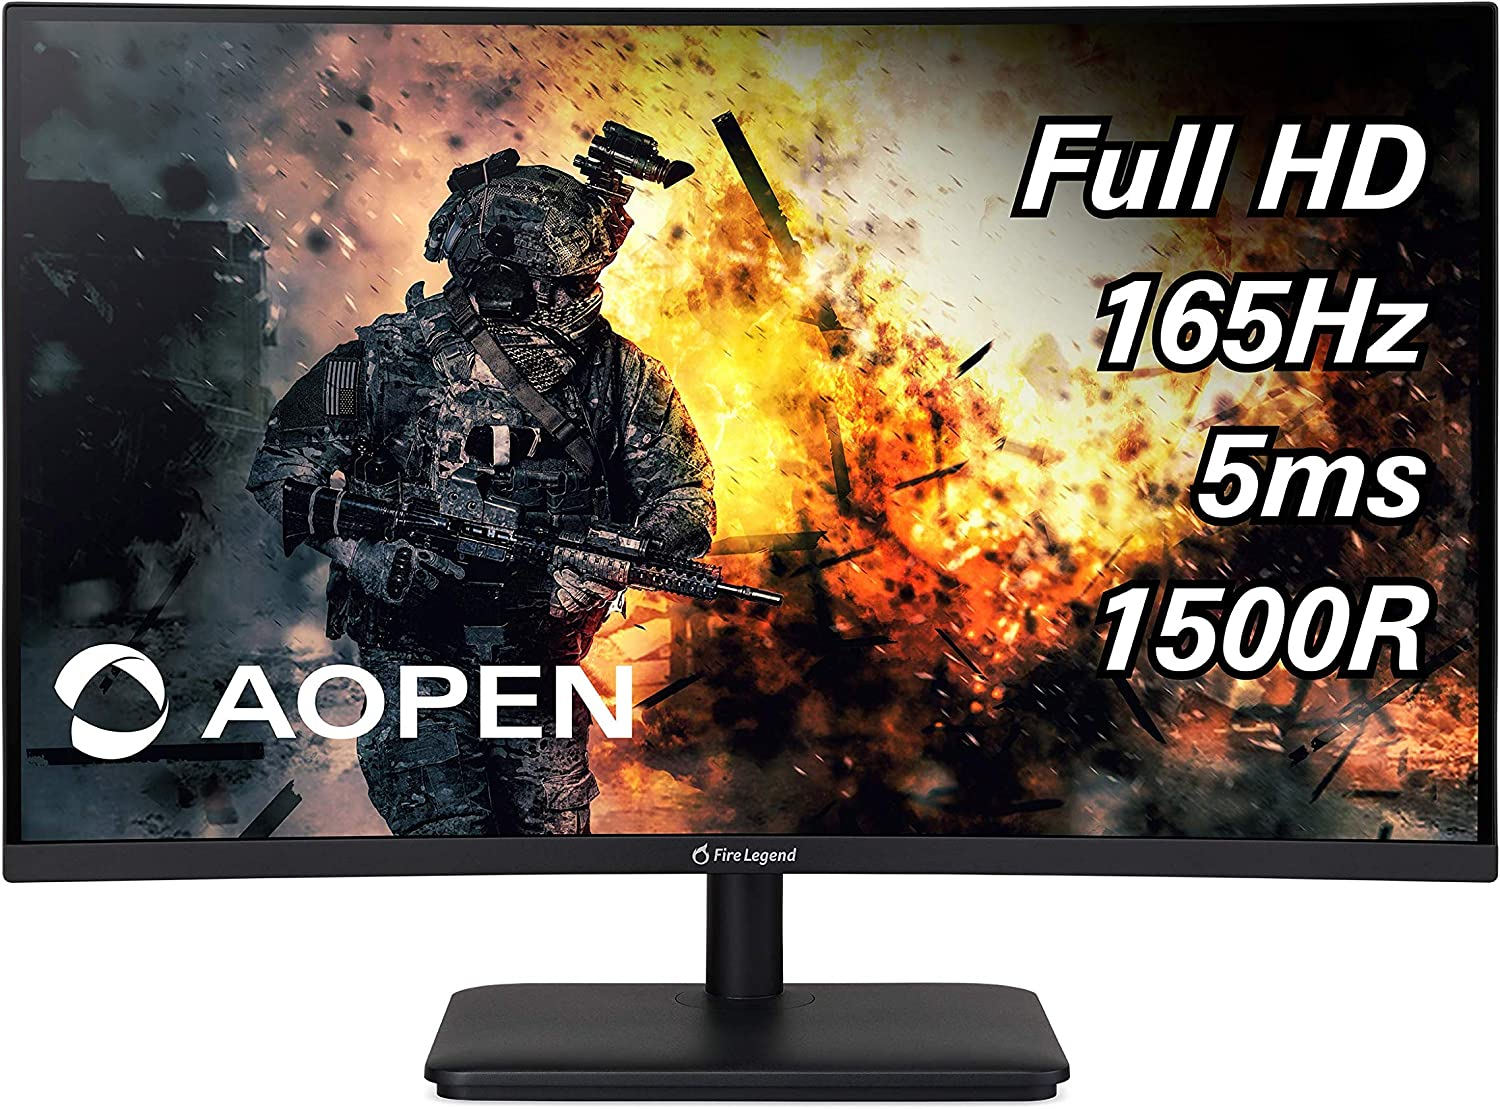 "AOPEN 27HC5R Pbiipx 27"" 1500R Curved Full HD (1920 x 1080) VA Gaming Monitor with AMD Radeon FREESYNC Premium Technology, 165Hz (Display Port & 2 x HDMI Ports)"